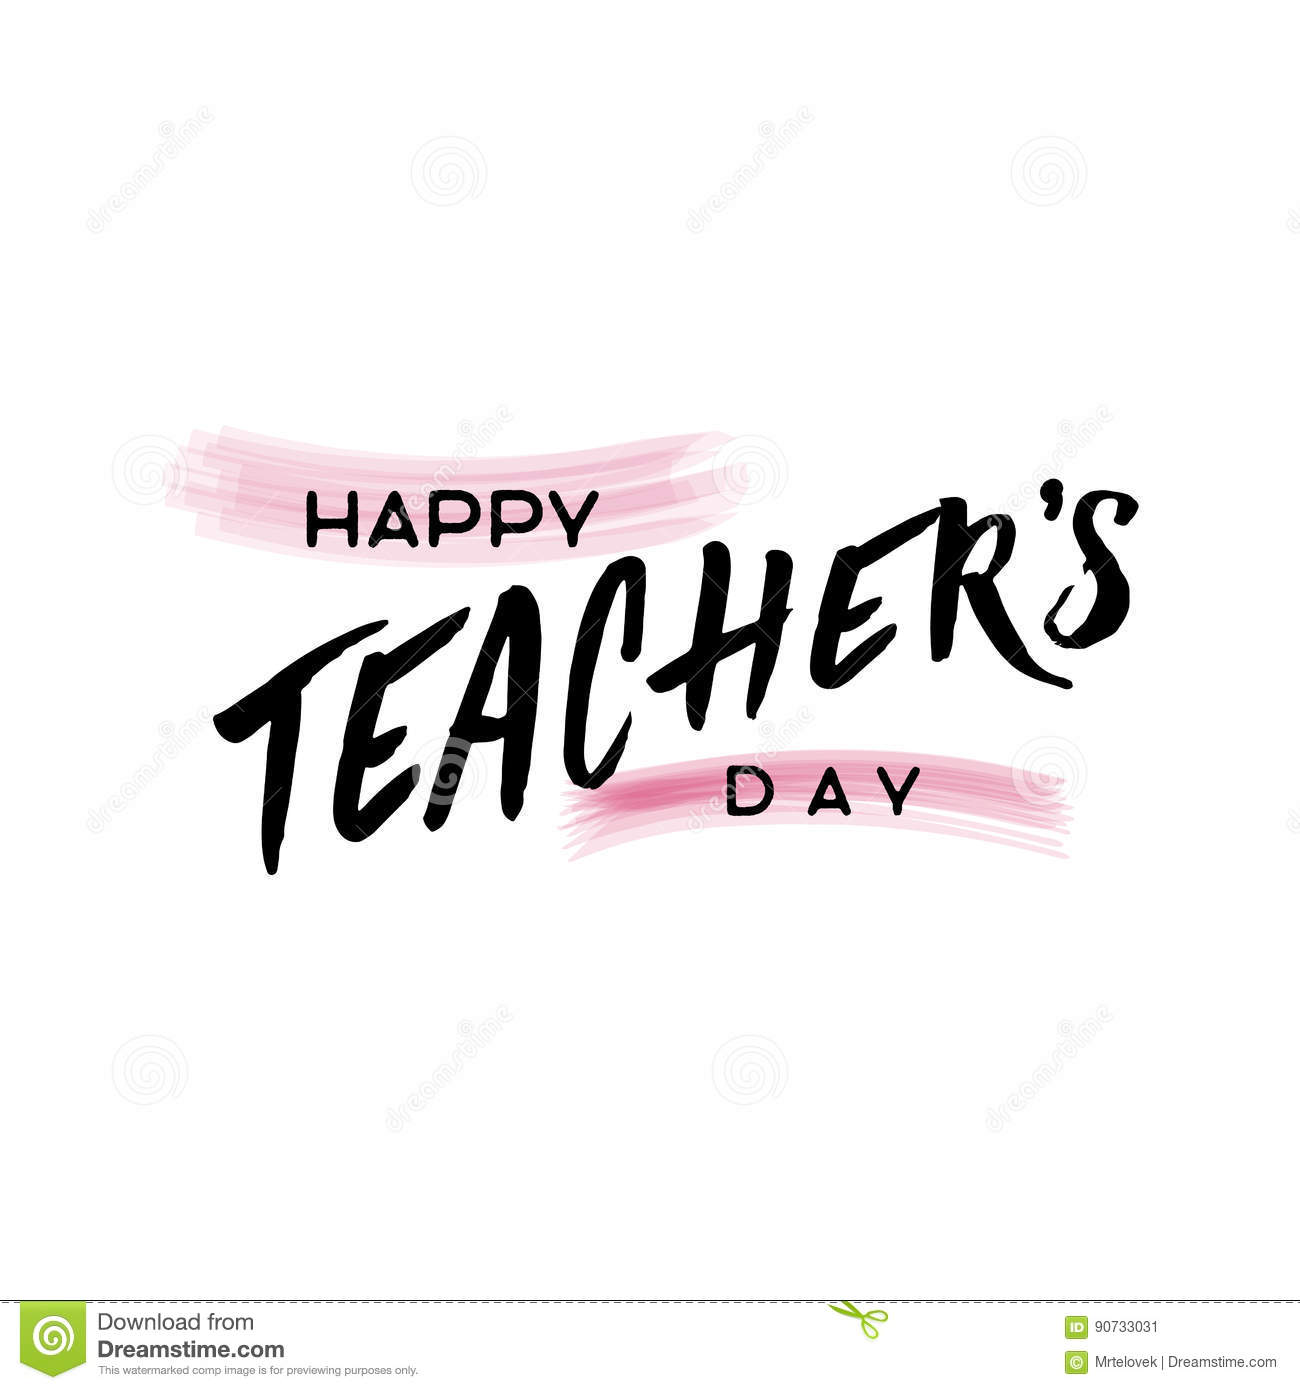 Book Quotes Wallpaper Cursive Lettering And Calligraphy Modern Happy Teachers Day To